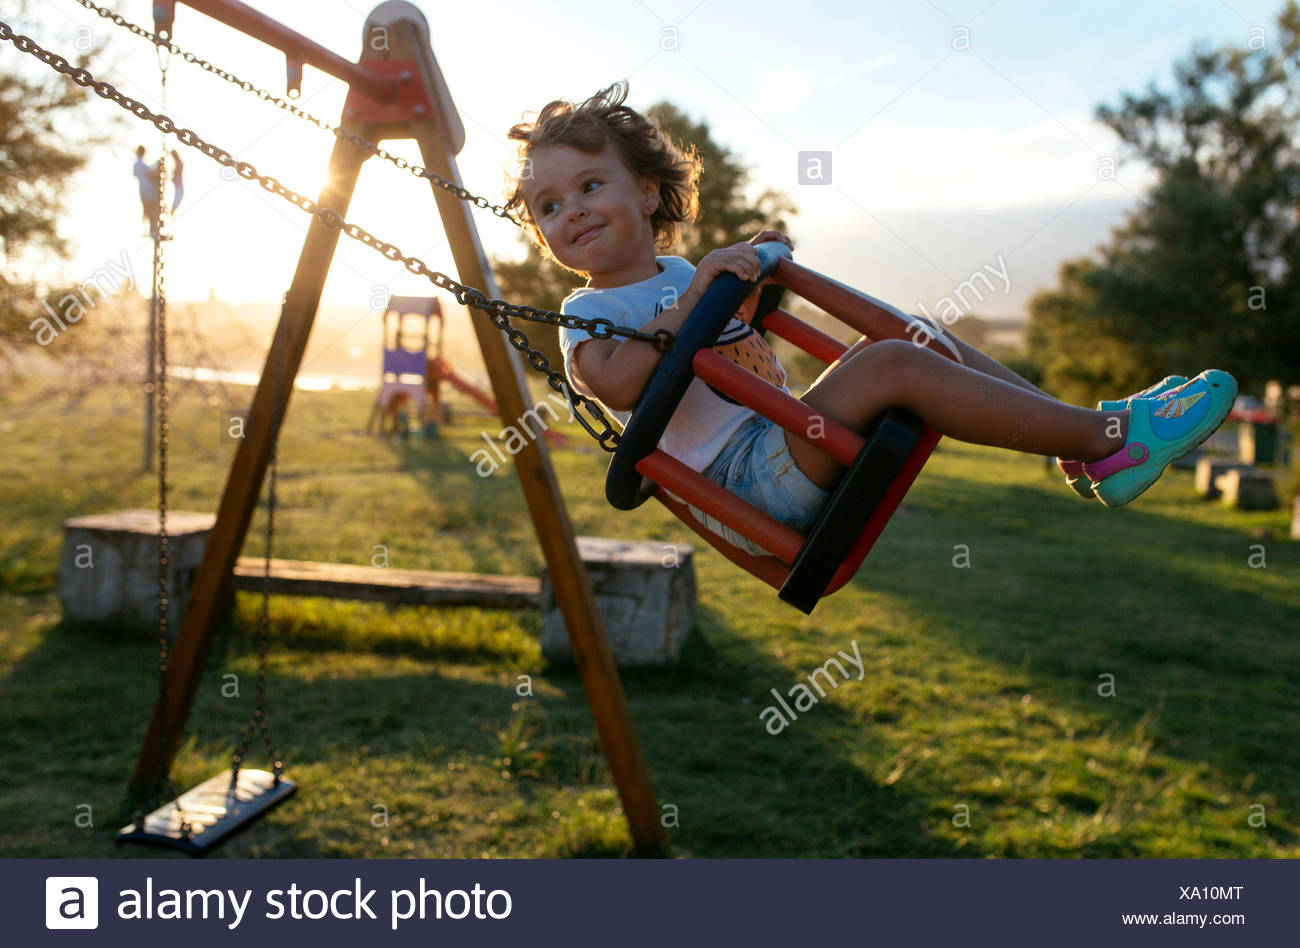 Portrait of happy little girl on a swing at backlight - Stock Image